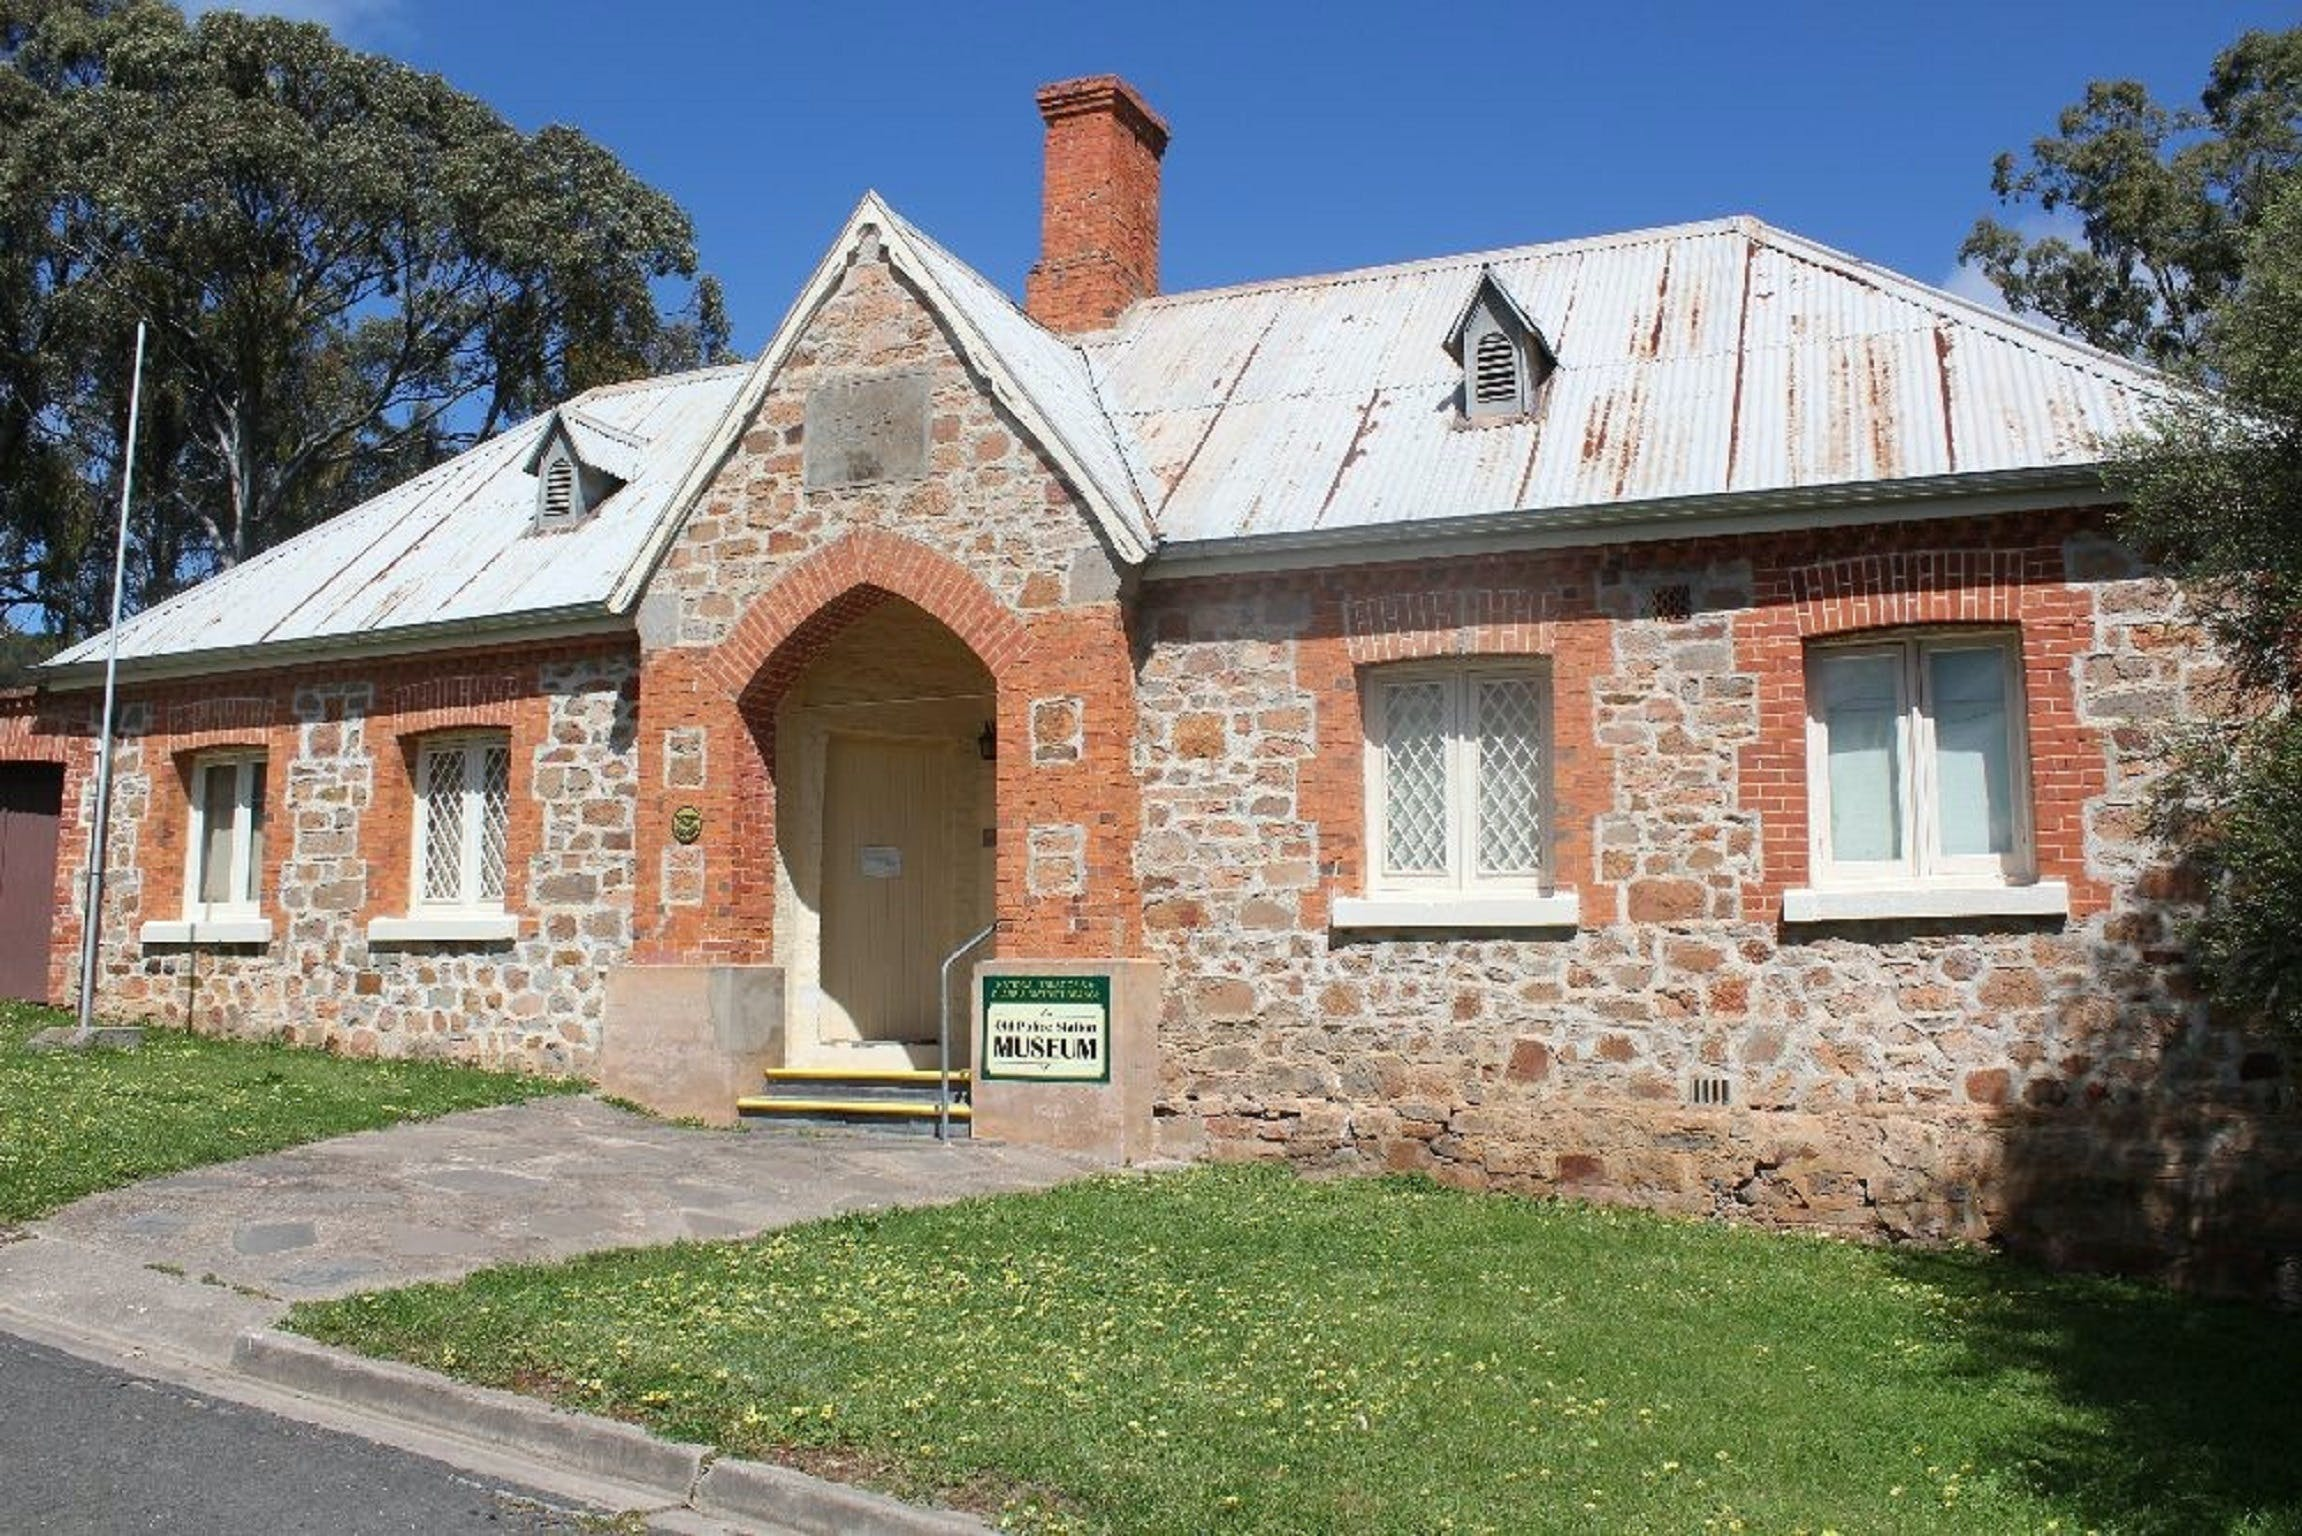 National Trust South Autralia Clare Branch Museum - Accommodation Burleigh